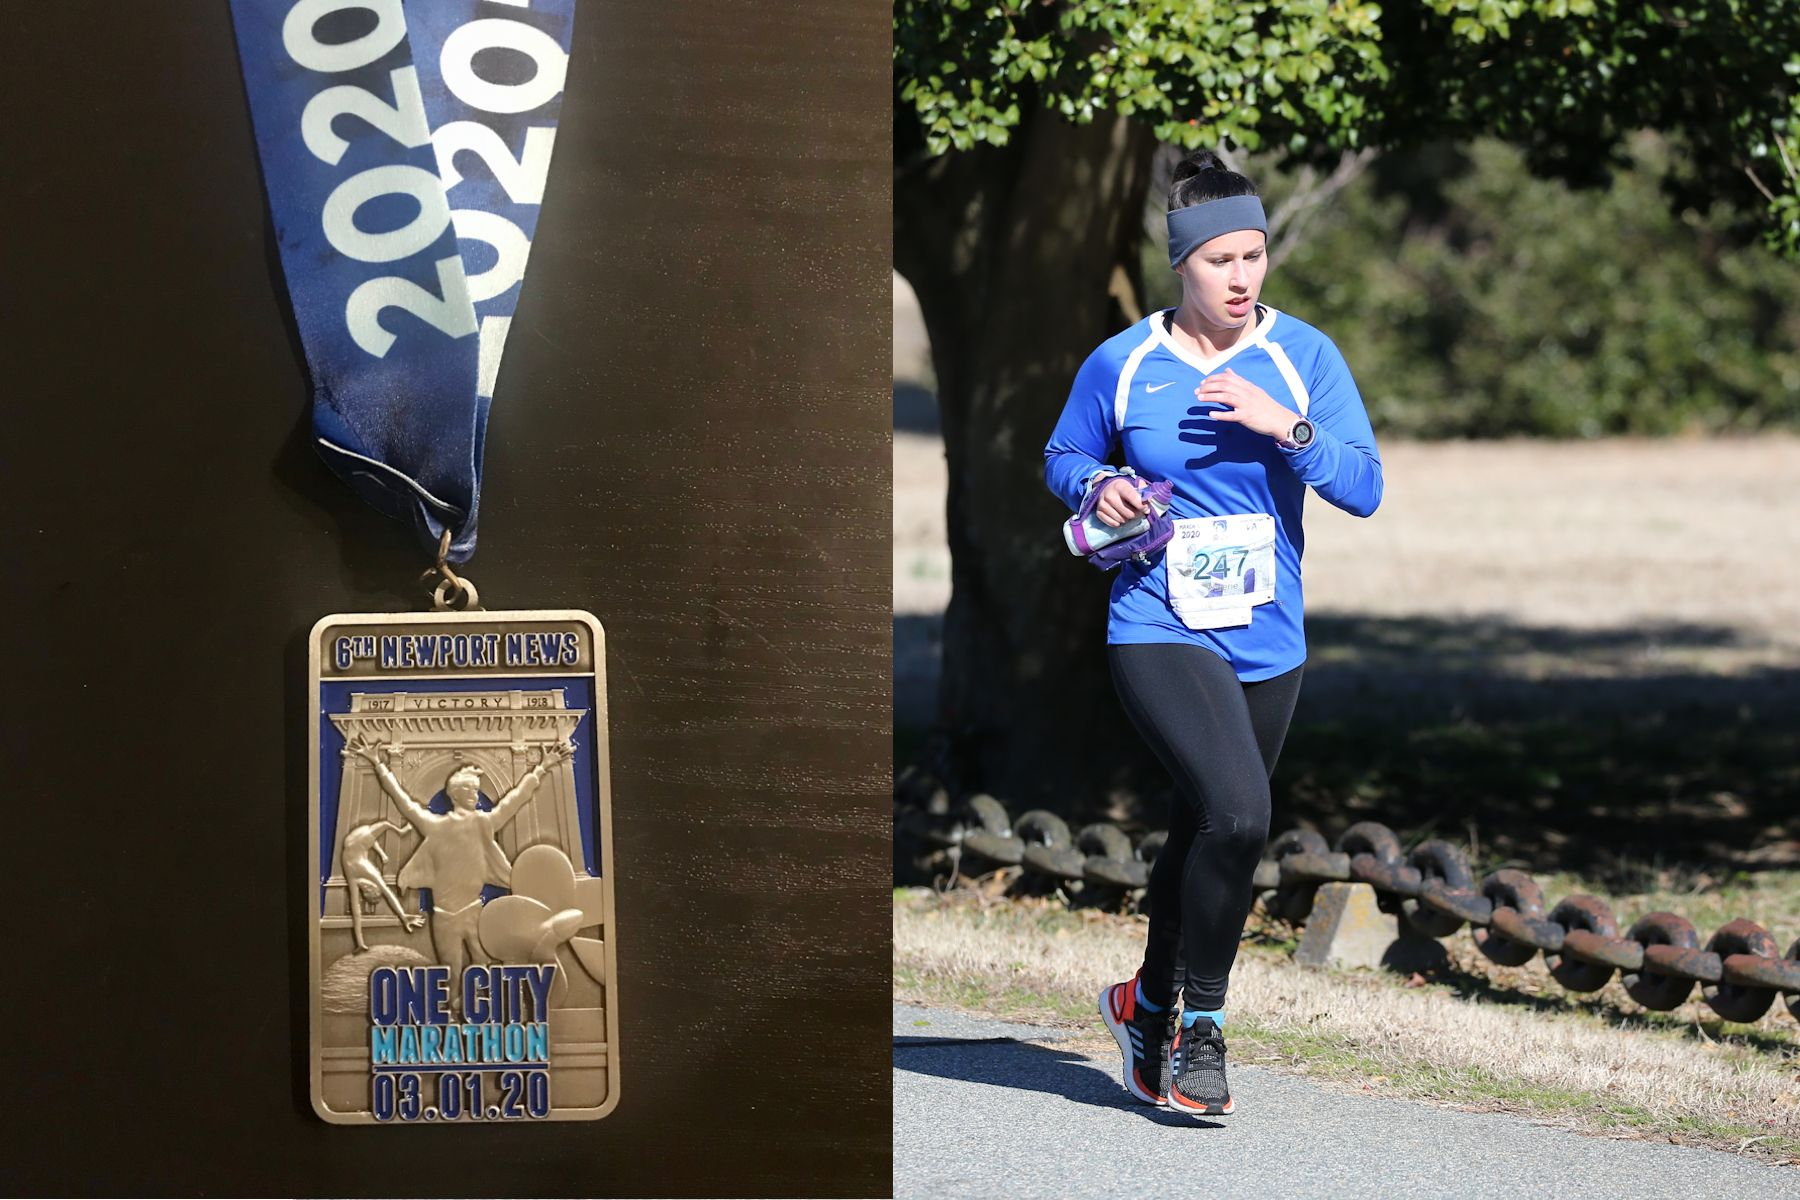 Vallerie running in the Newport News One City Marathon and the medal she so richly deserved